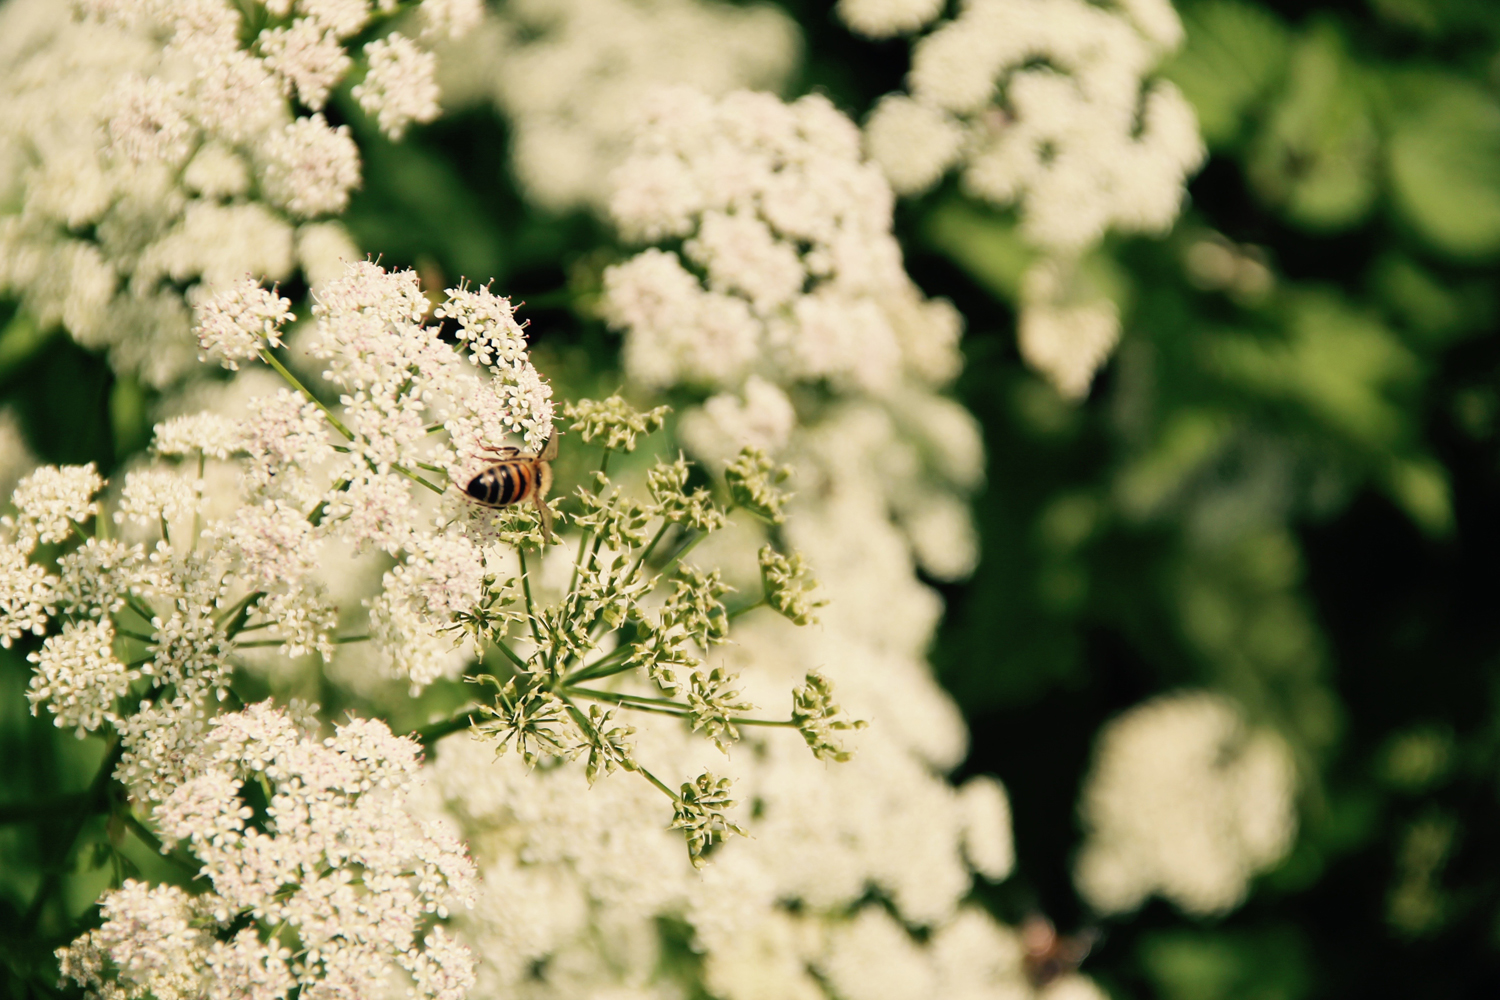 A bee on a cow parsley flower